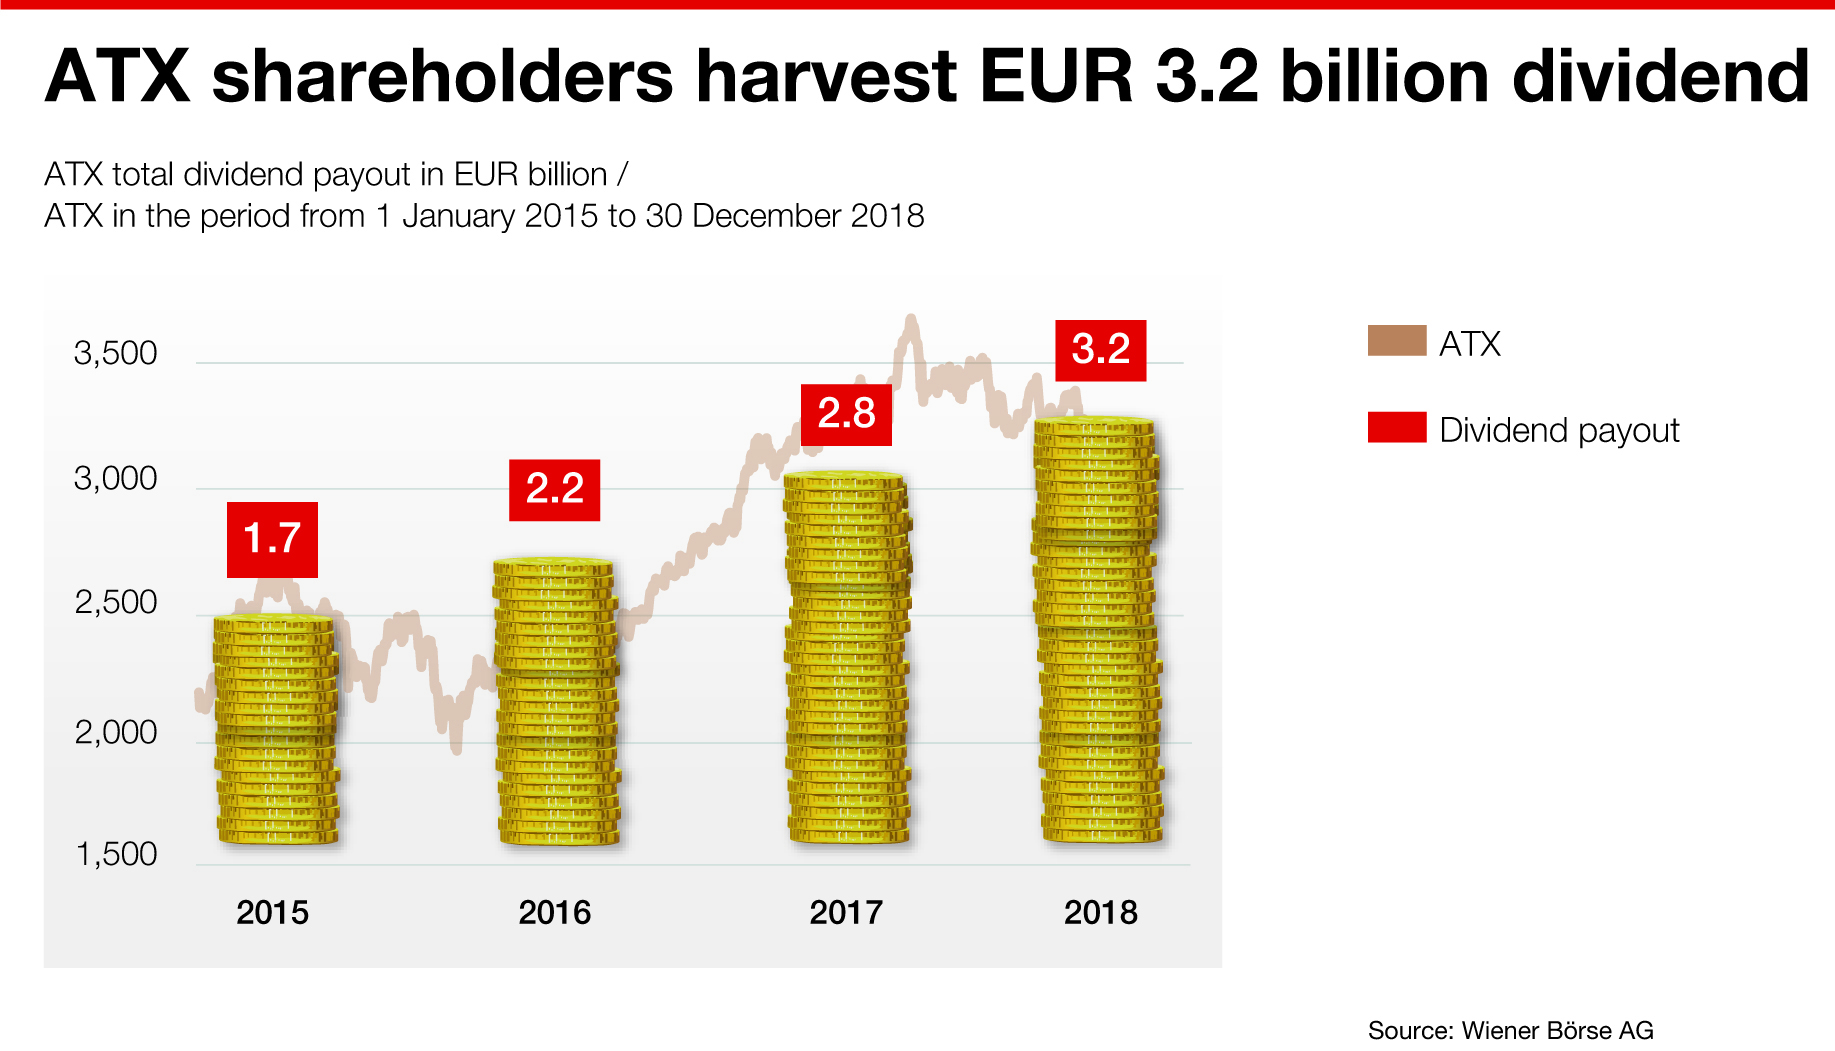 Info graphic: ATX shareholders harvest 3.2 billion EUR dividend